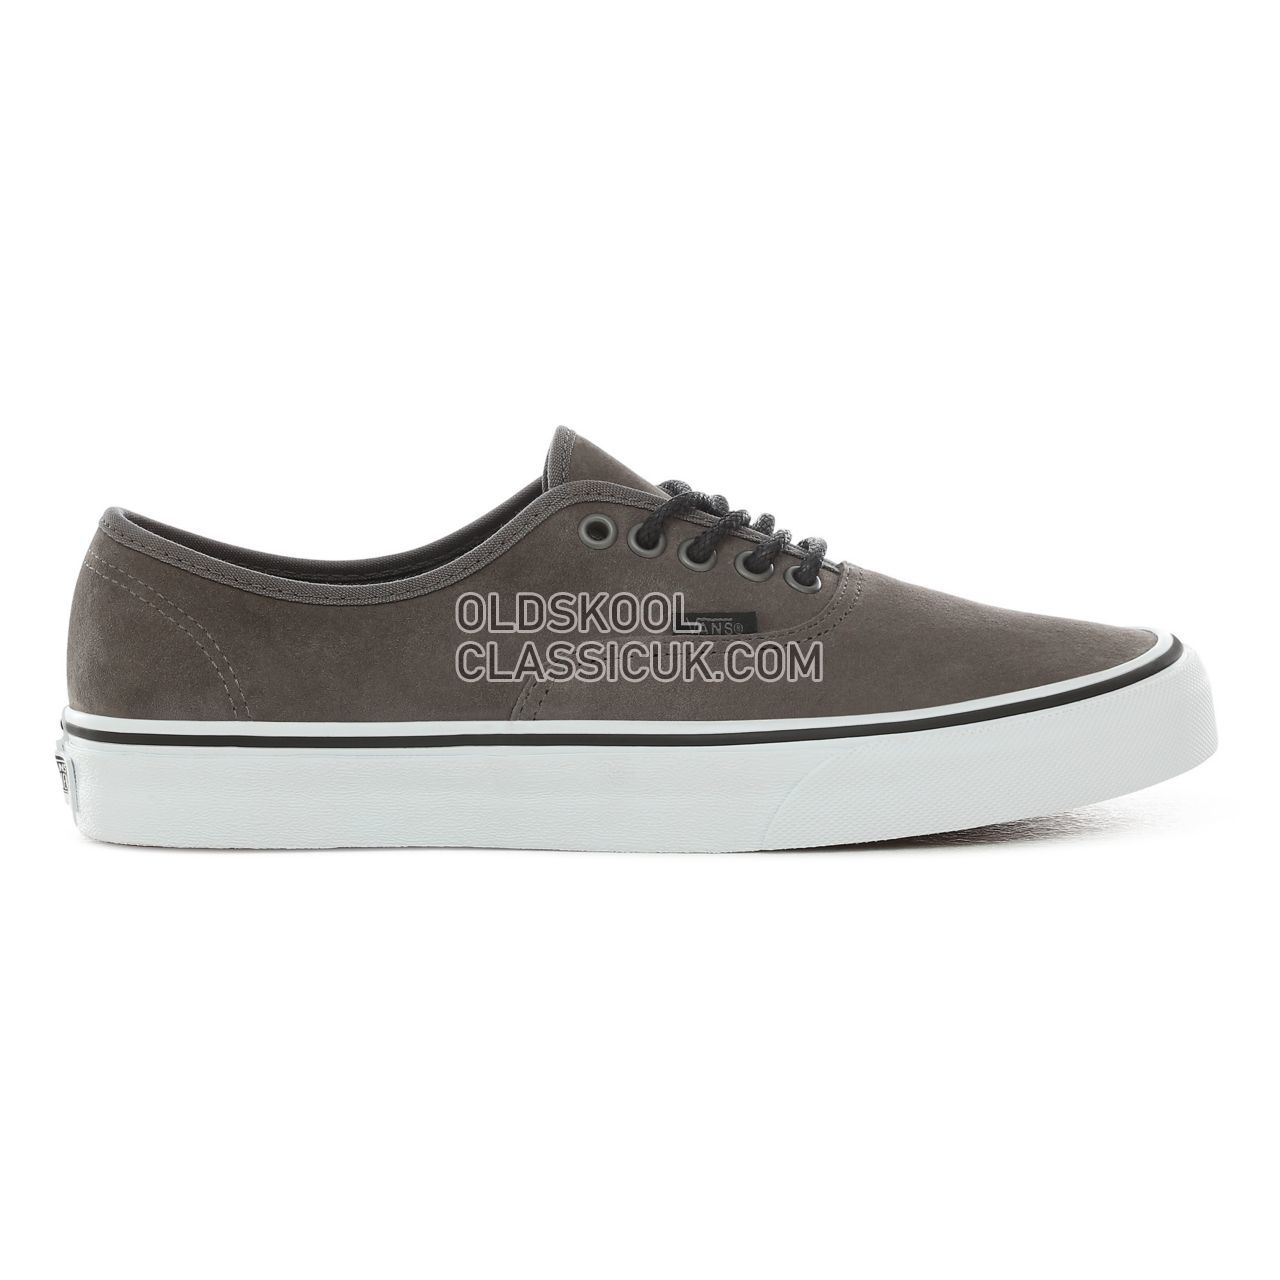 Vans Texture Suede Authentic Sneakers Mens Pewter VN0004MLJPL Shoes